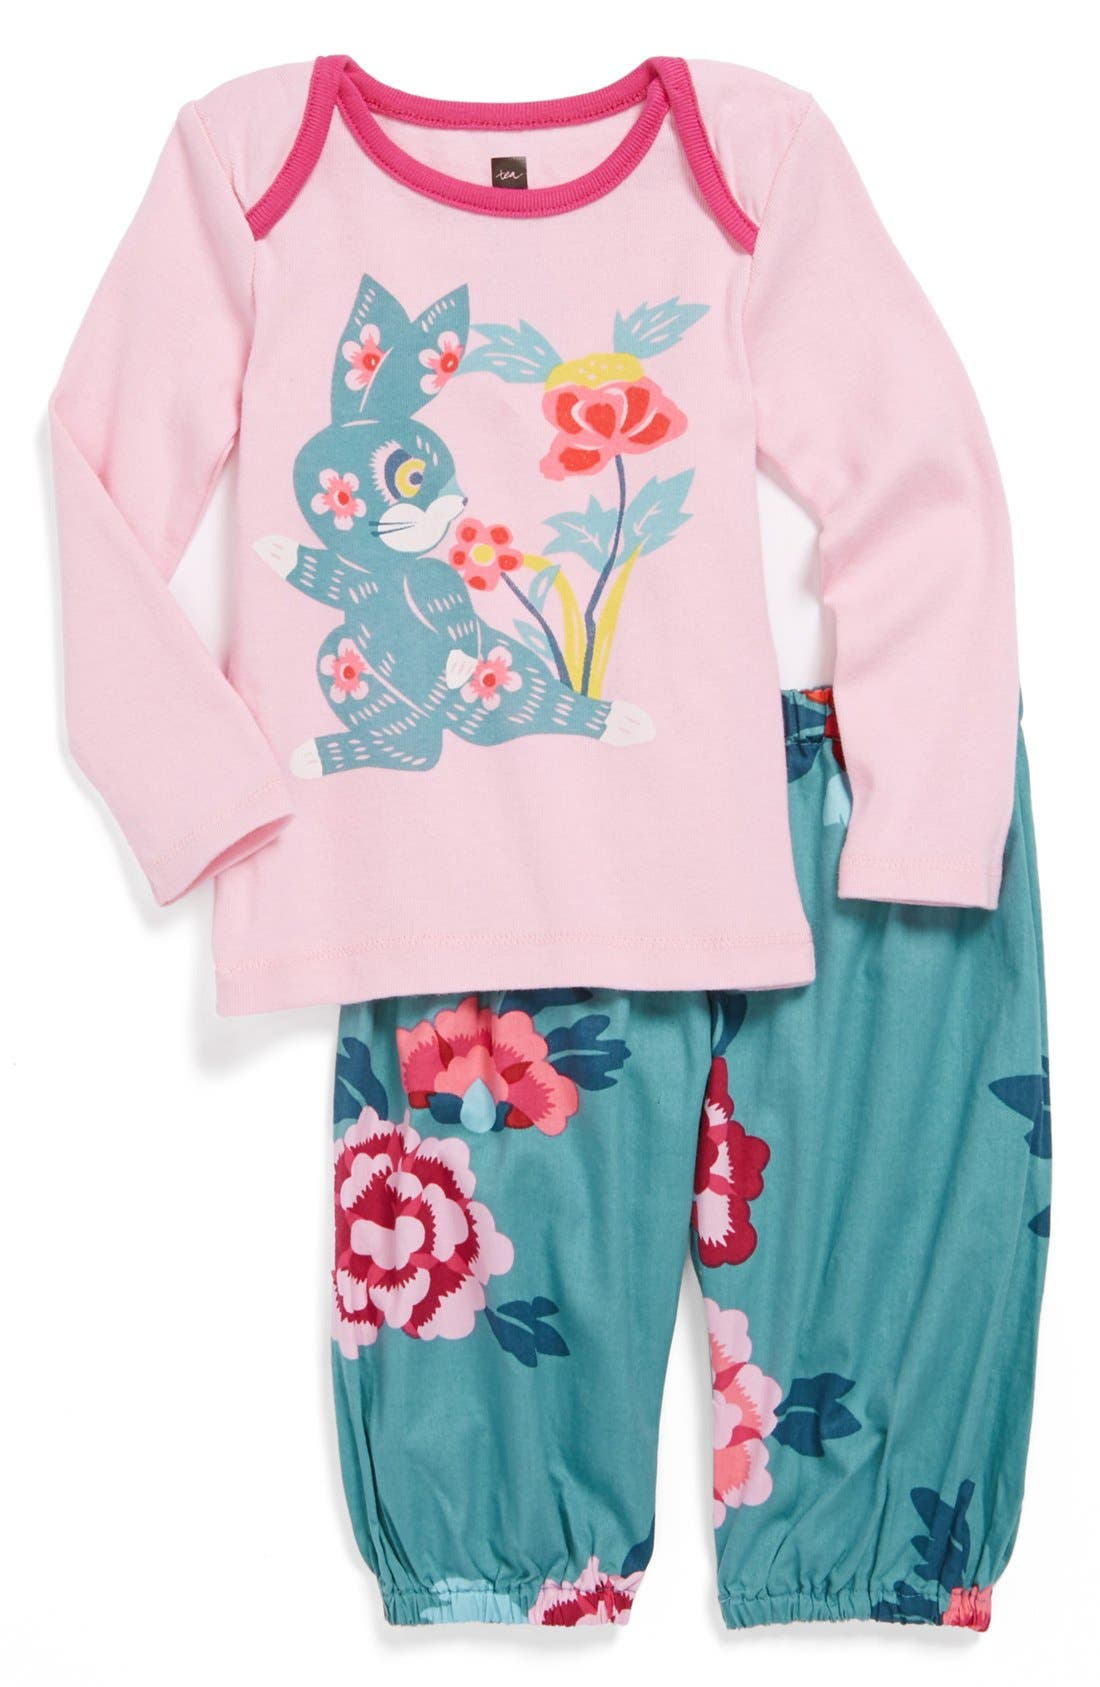 Main Image - Tea Collection 'Eastern Pop' Top & Pants (Baby Girls)